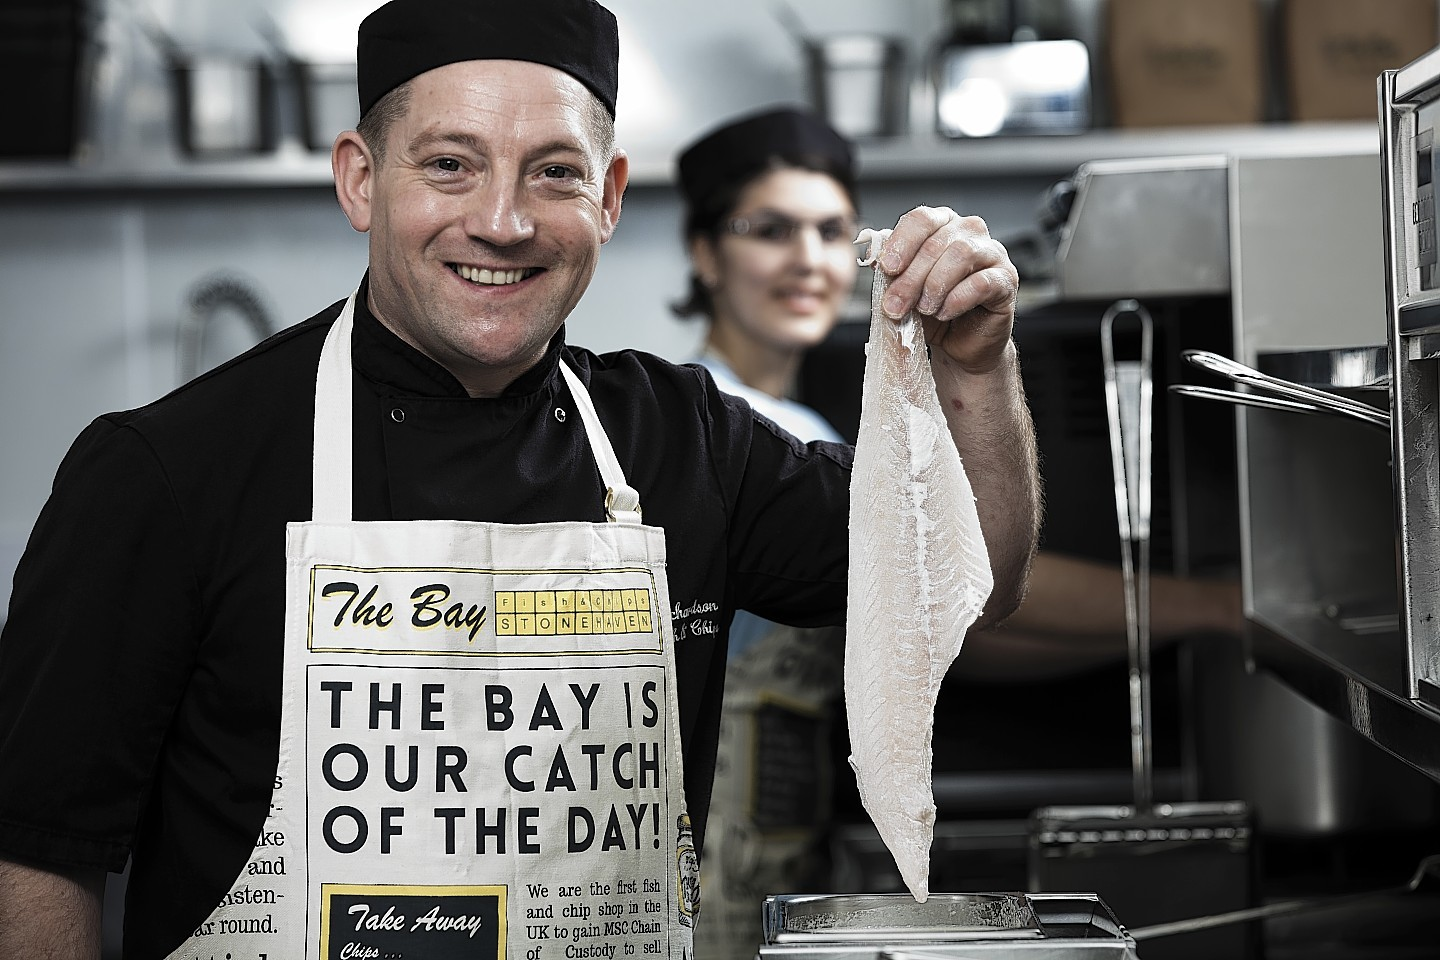 Calum Richardson, chef and owner of The Bay Fish and Chips